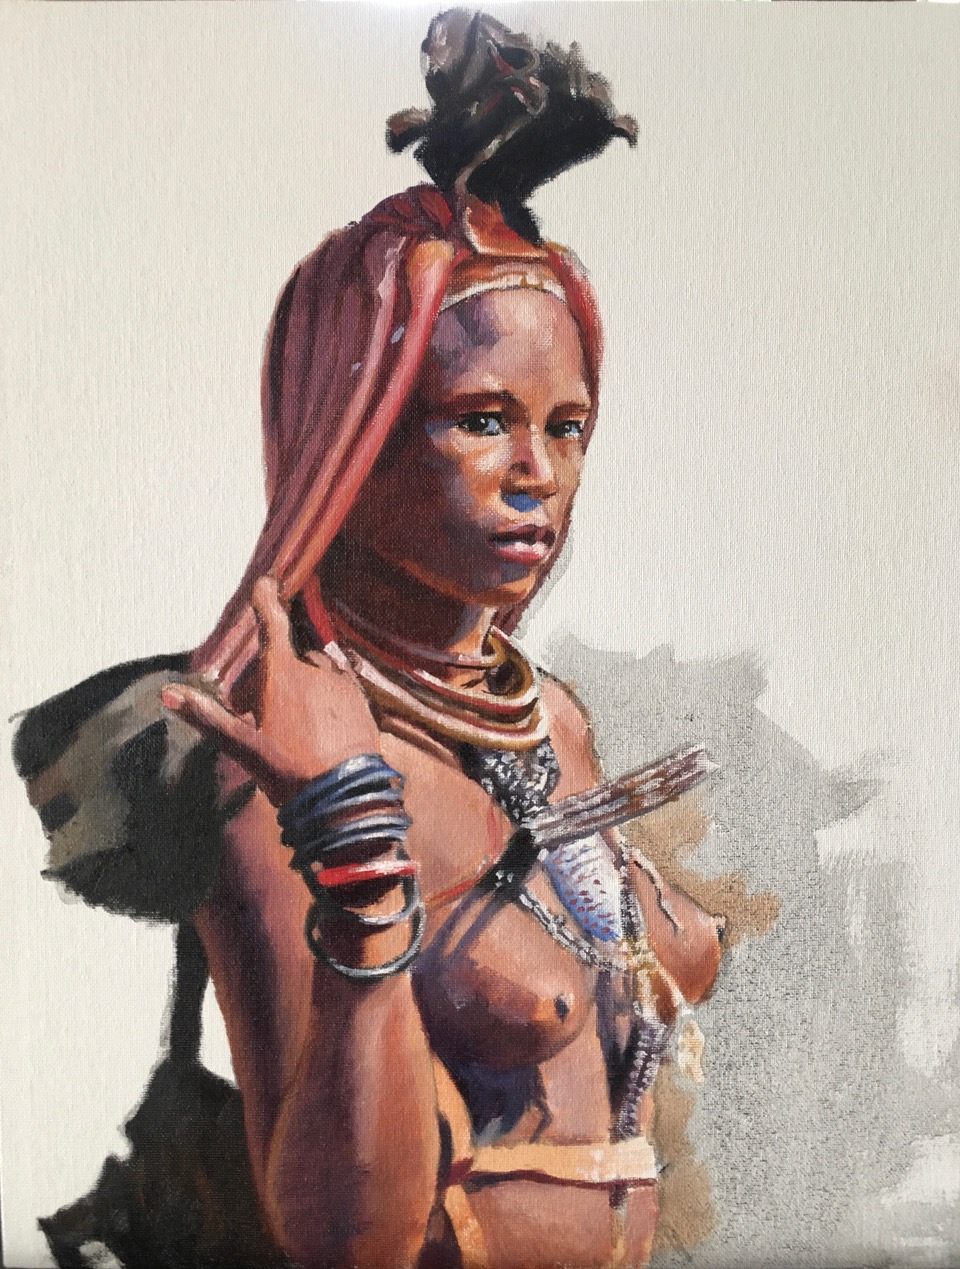 I too have a voice - Himba Girl 2020